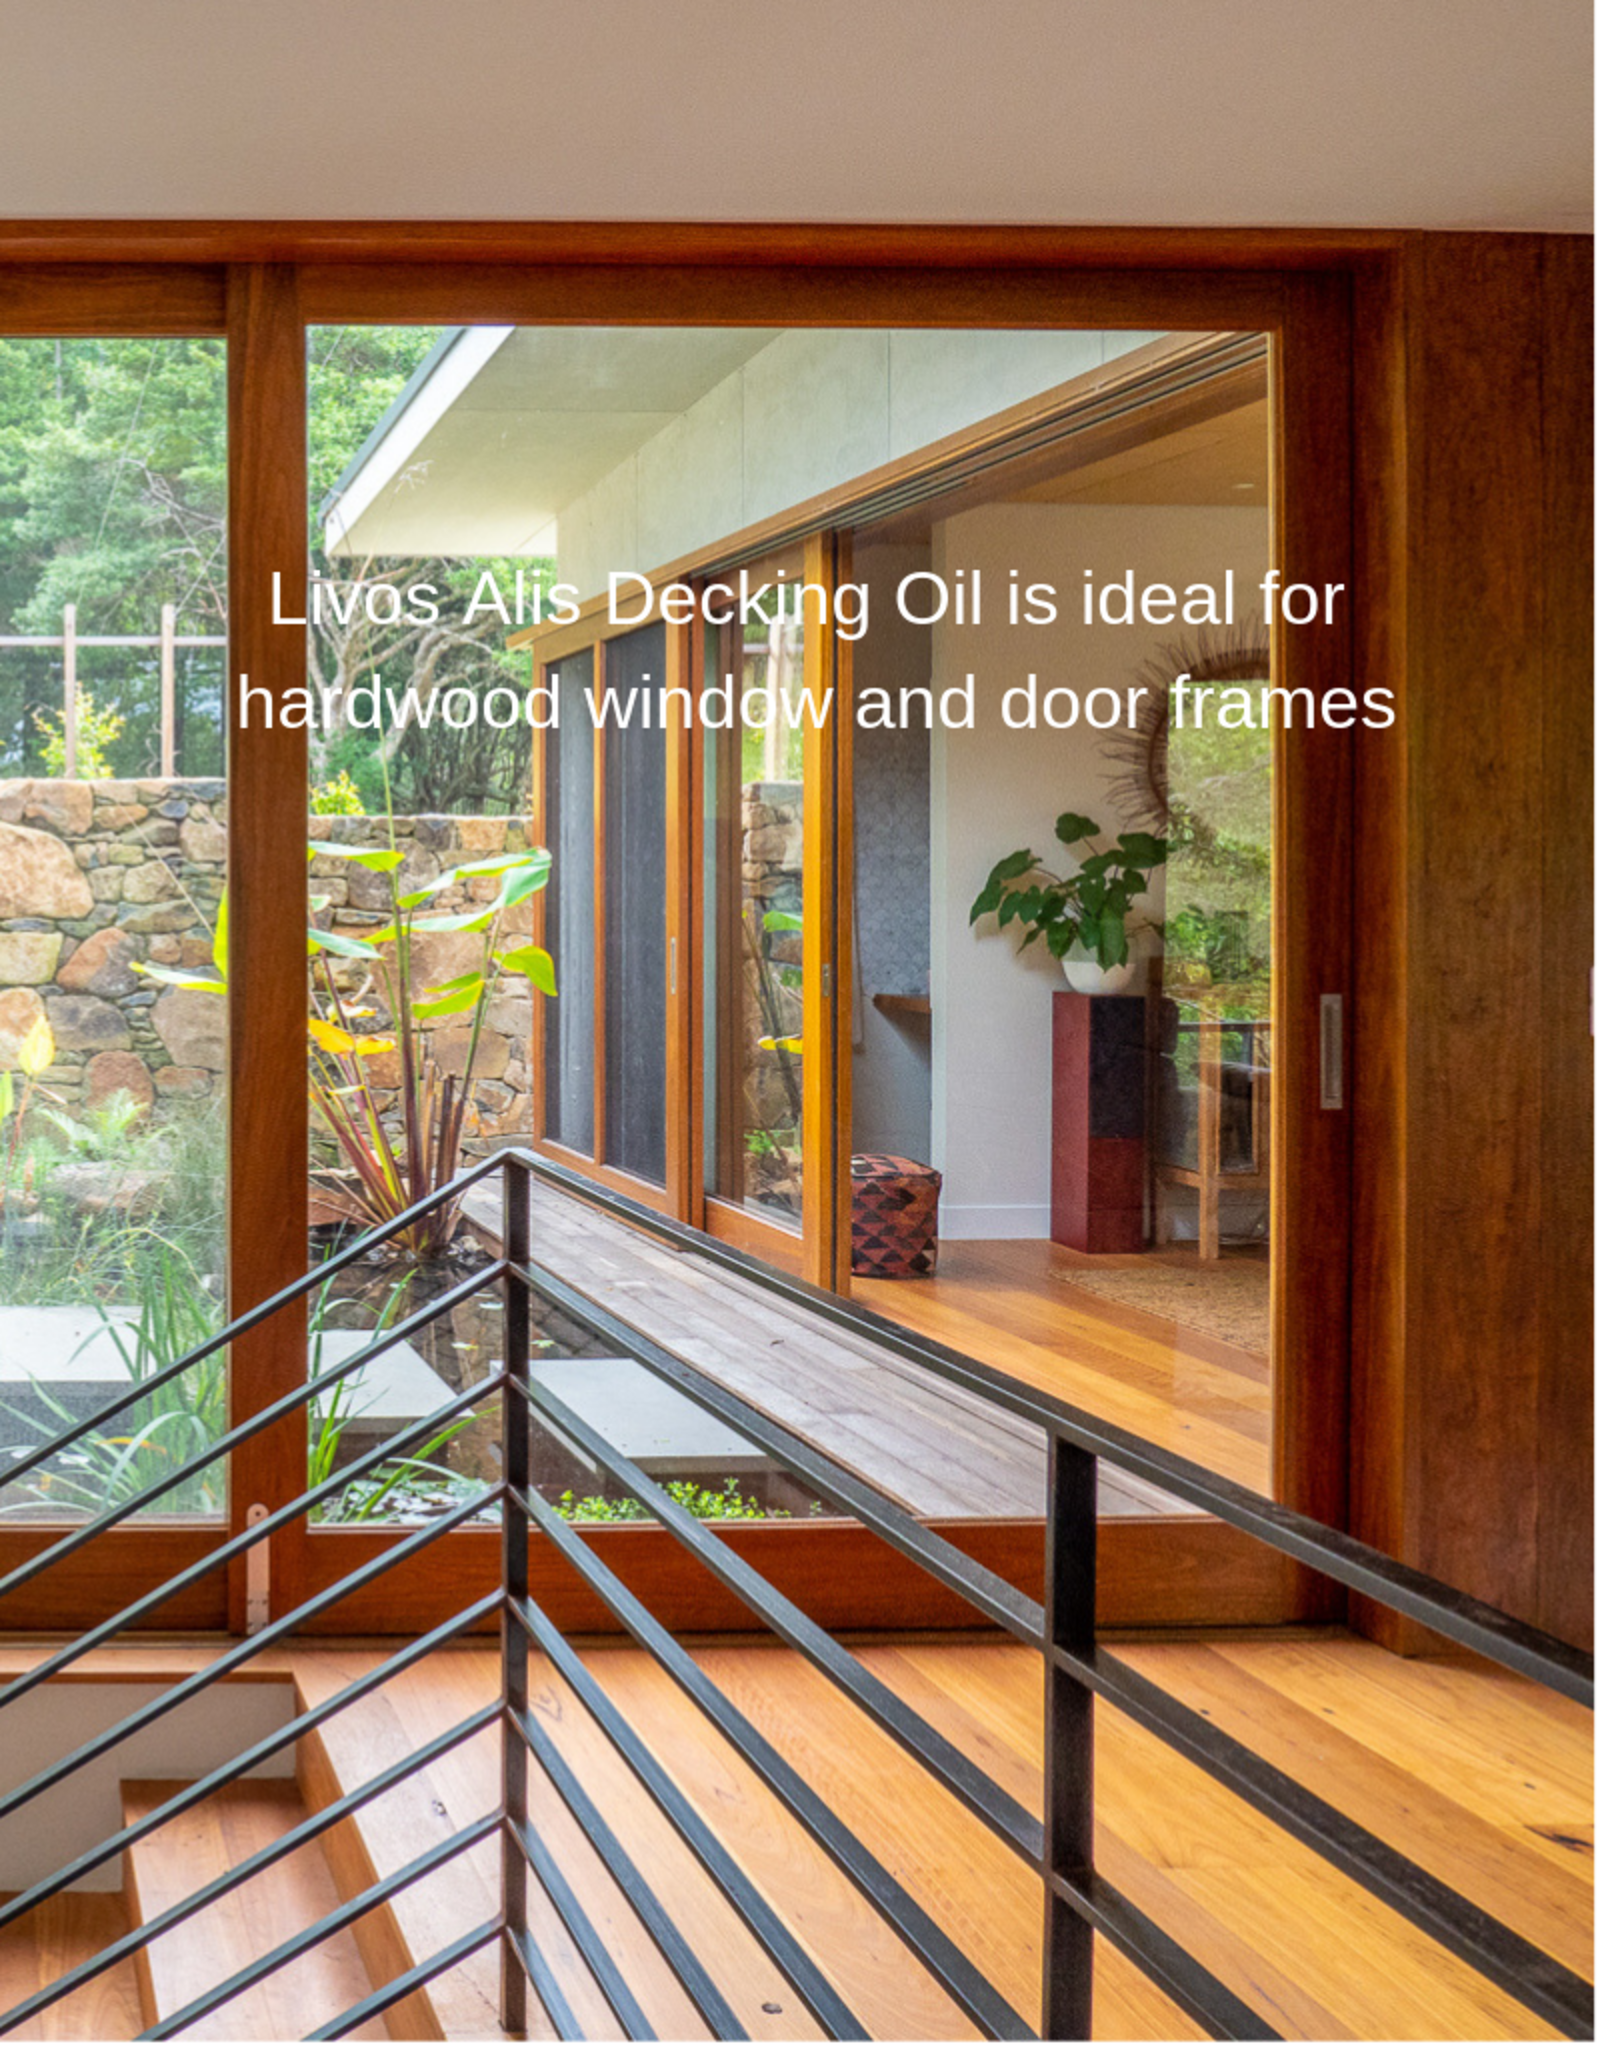 LIVOS Alis decking oil